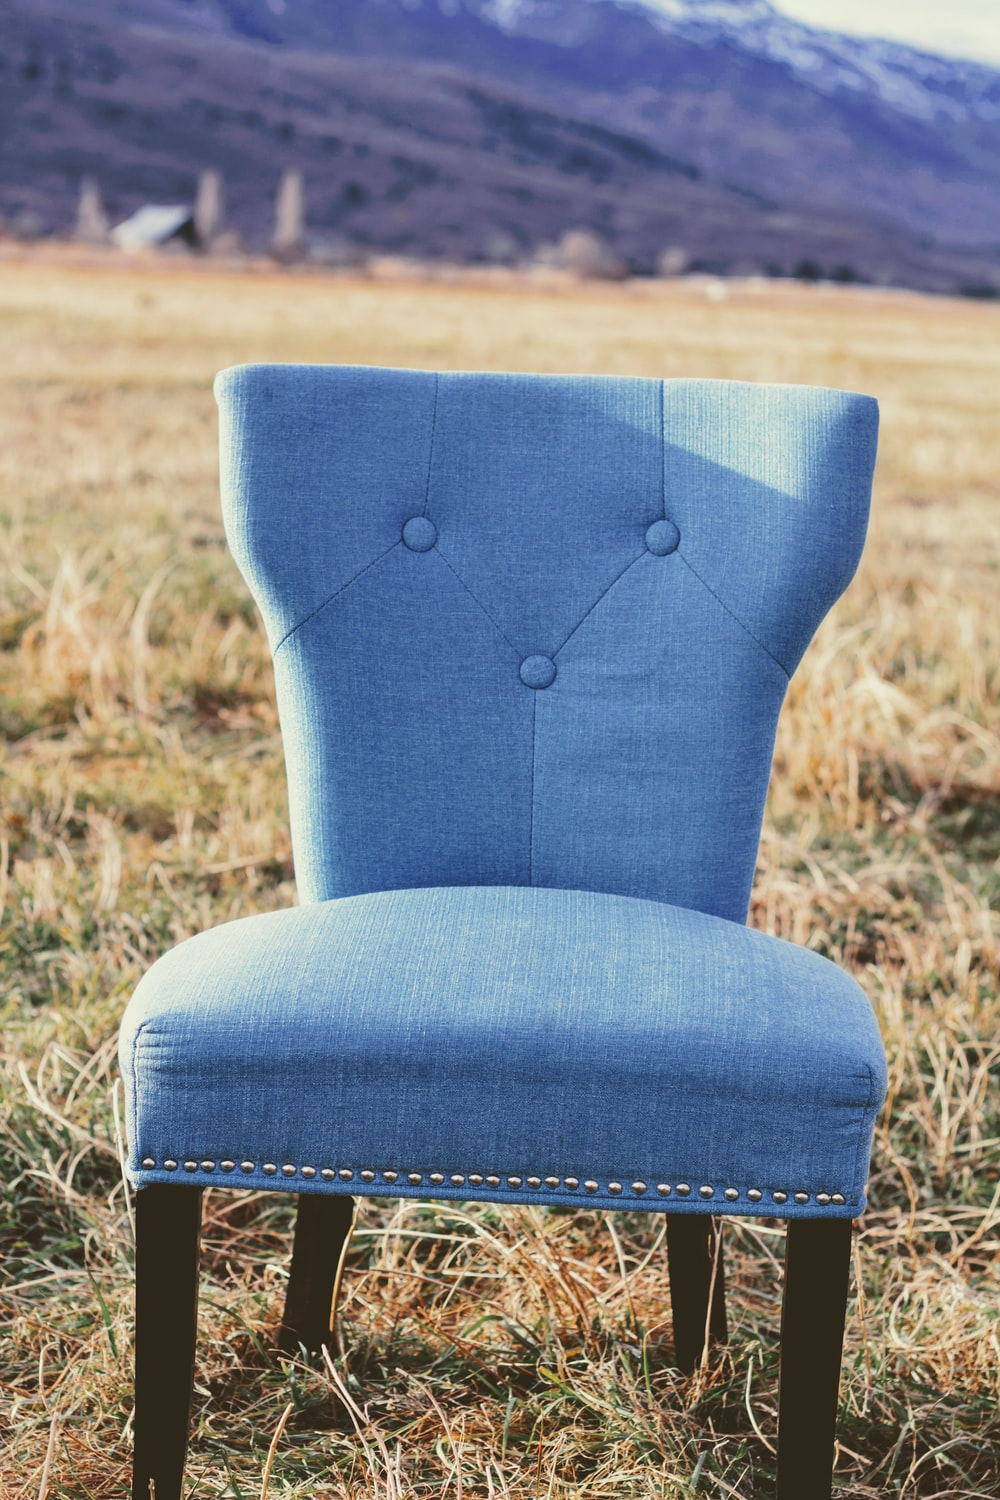 tufted blue padded armless chair on field during daytime